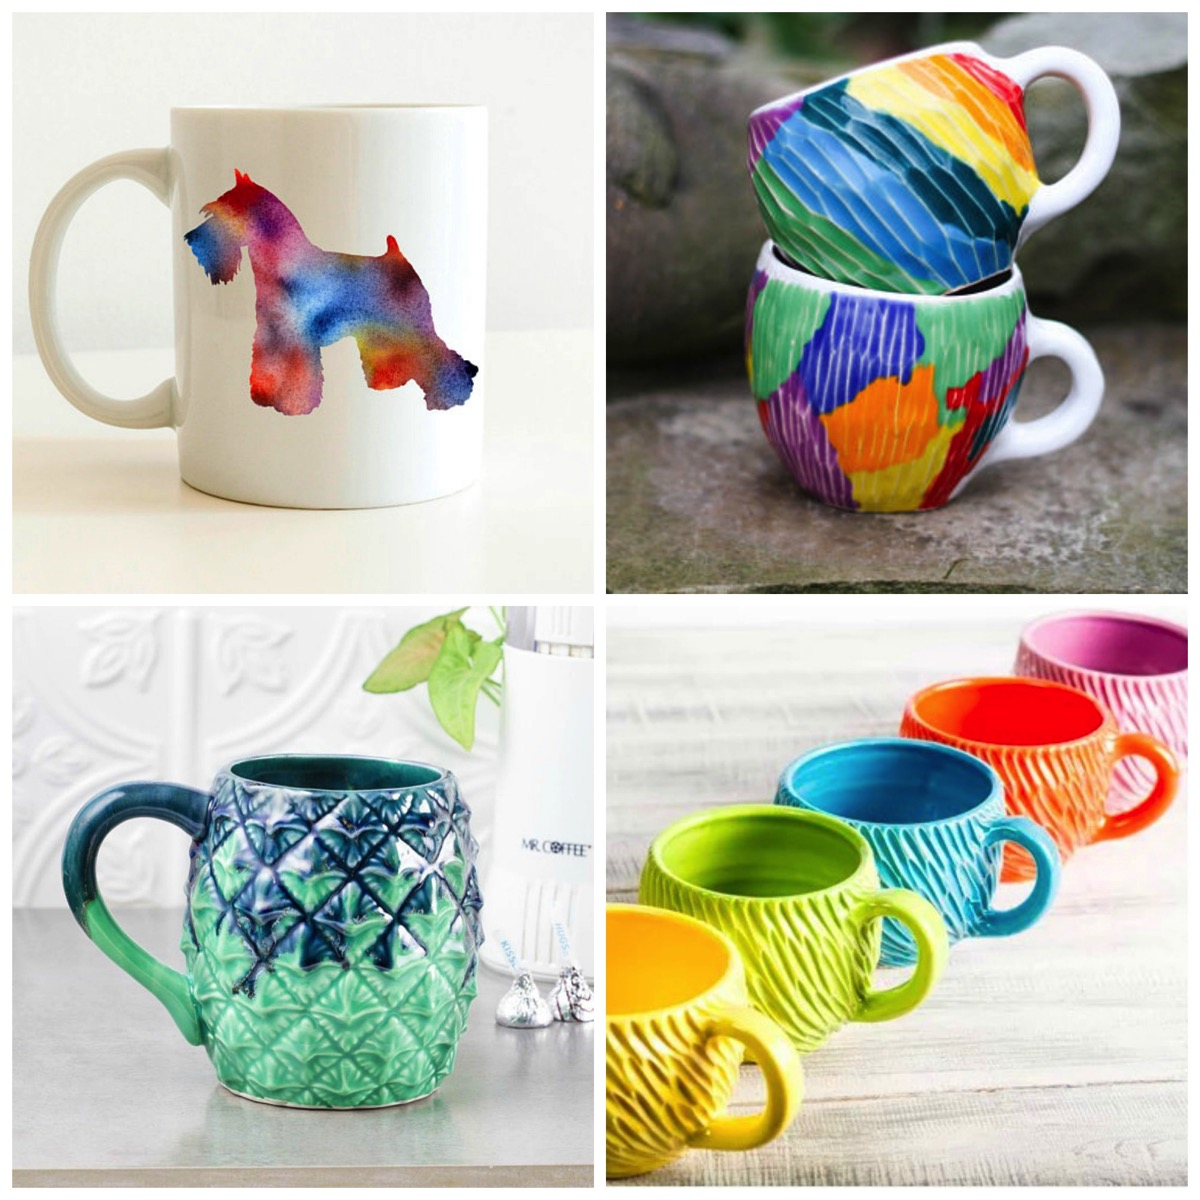 Top ten most colorful tea and coffee mugs on etsy